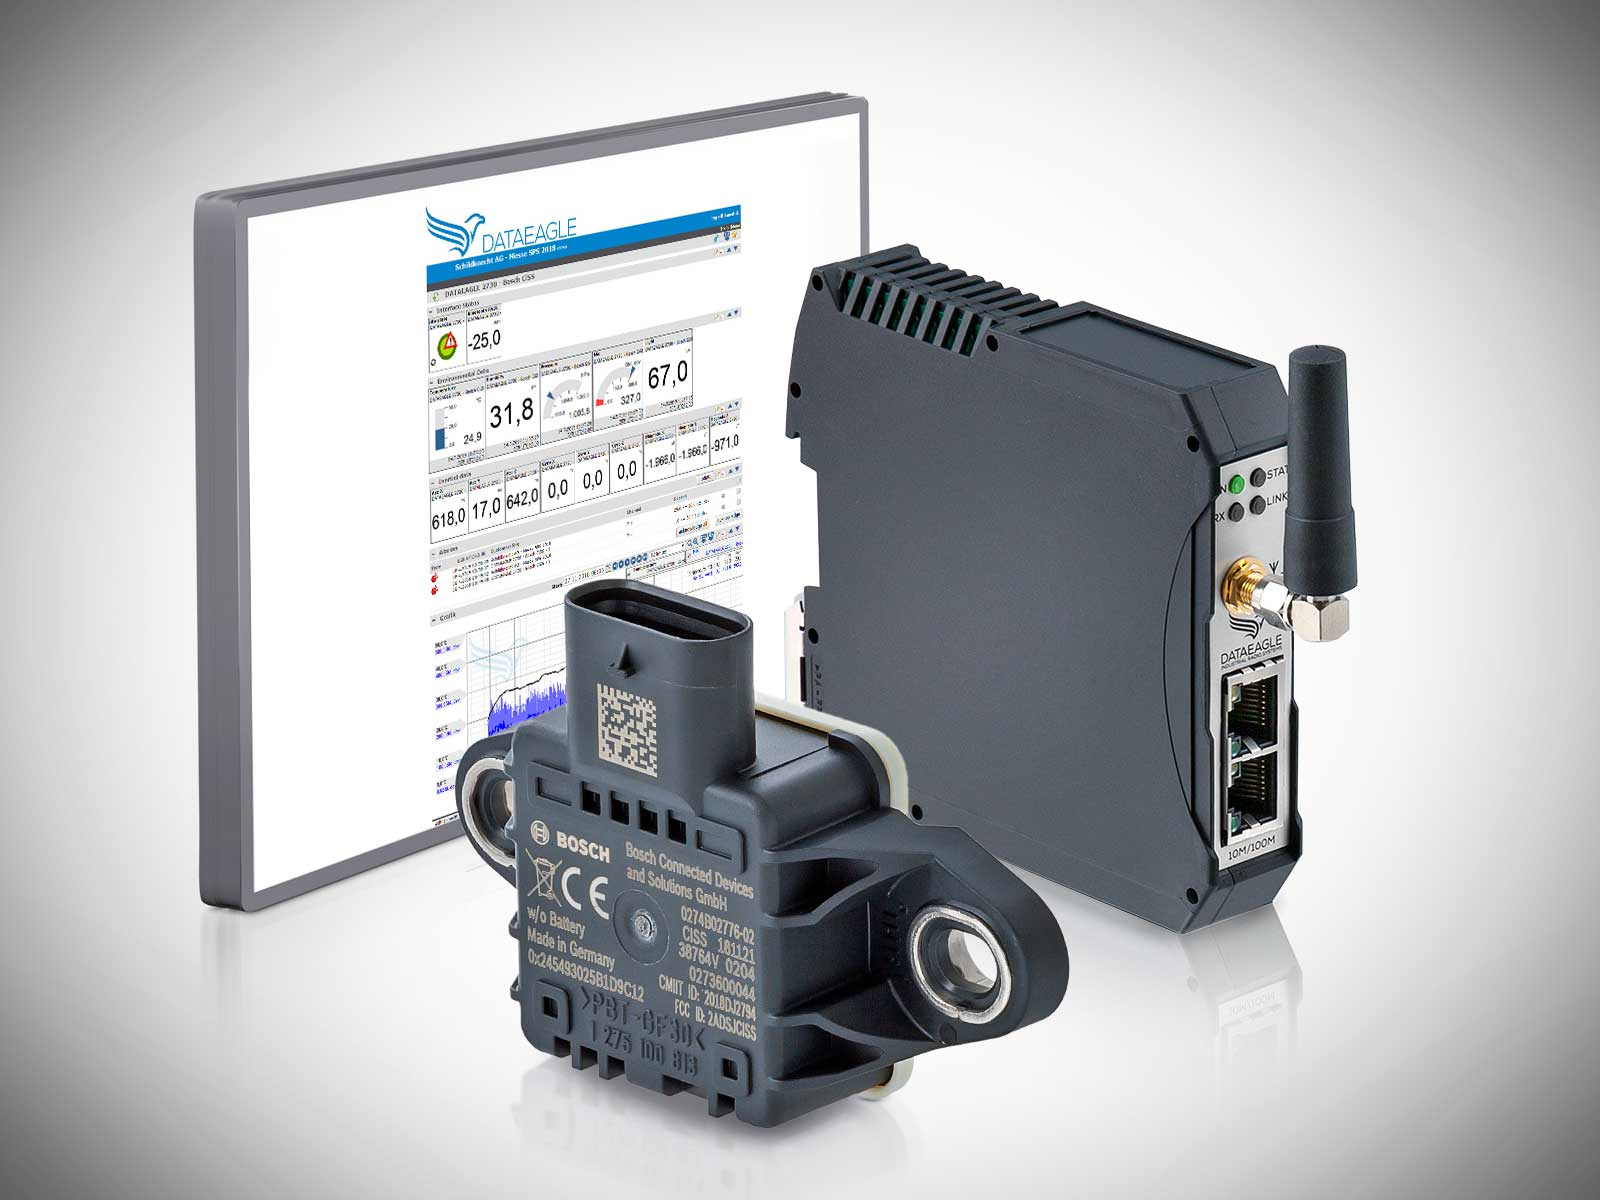 DATAEAGLE_Condition_Monitoring_System_1600x1200_Web-2